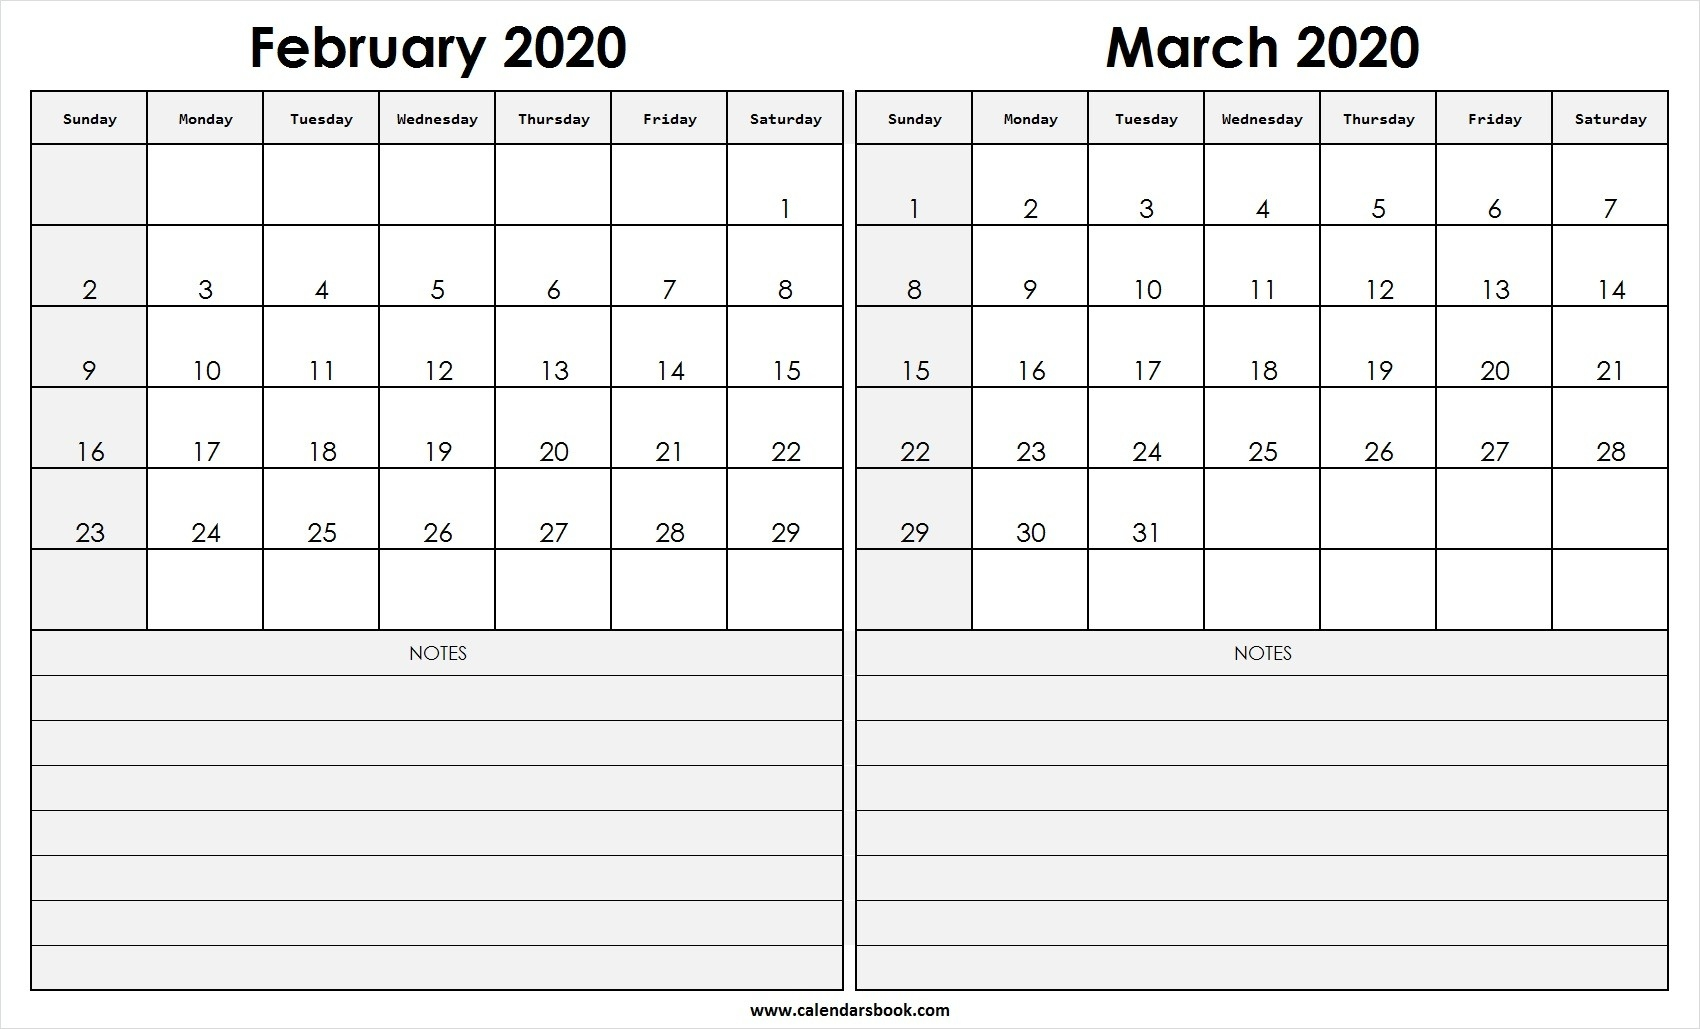 Print February March 2020 Calendar Template | 2 Month Calendar-January February March 2020 Calendar